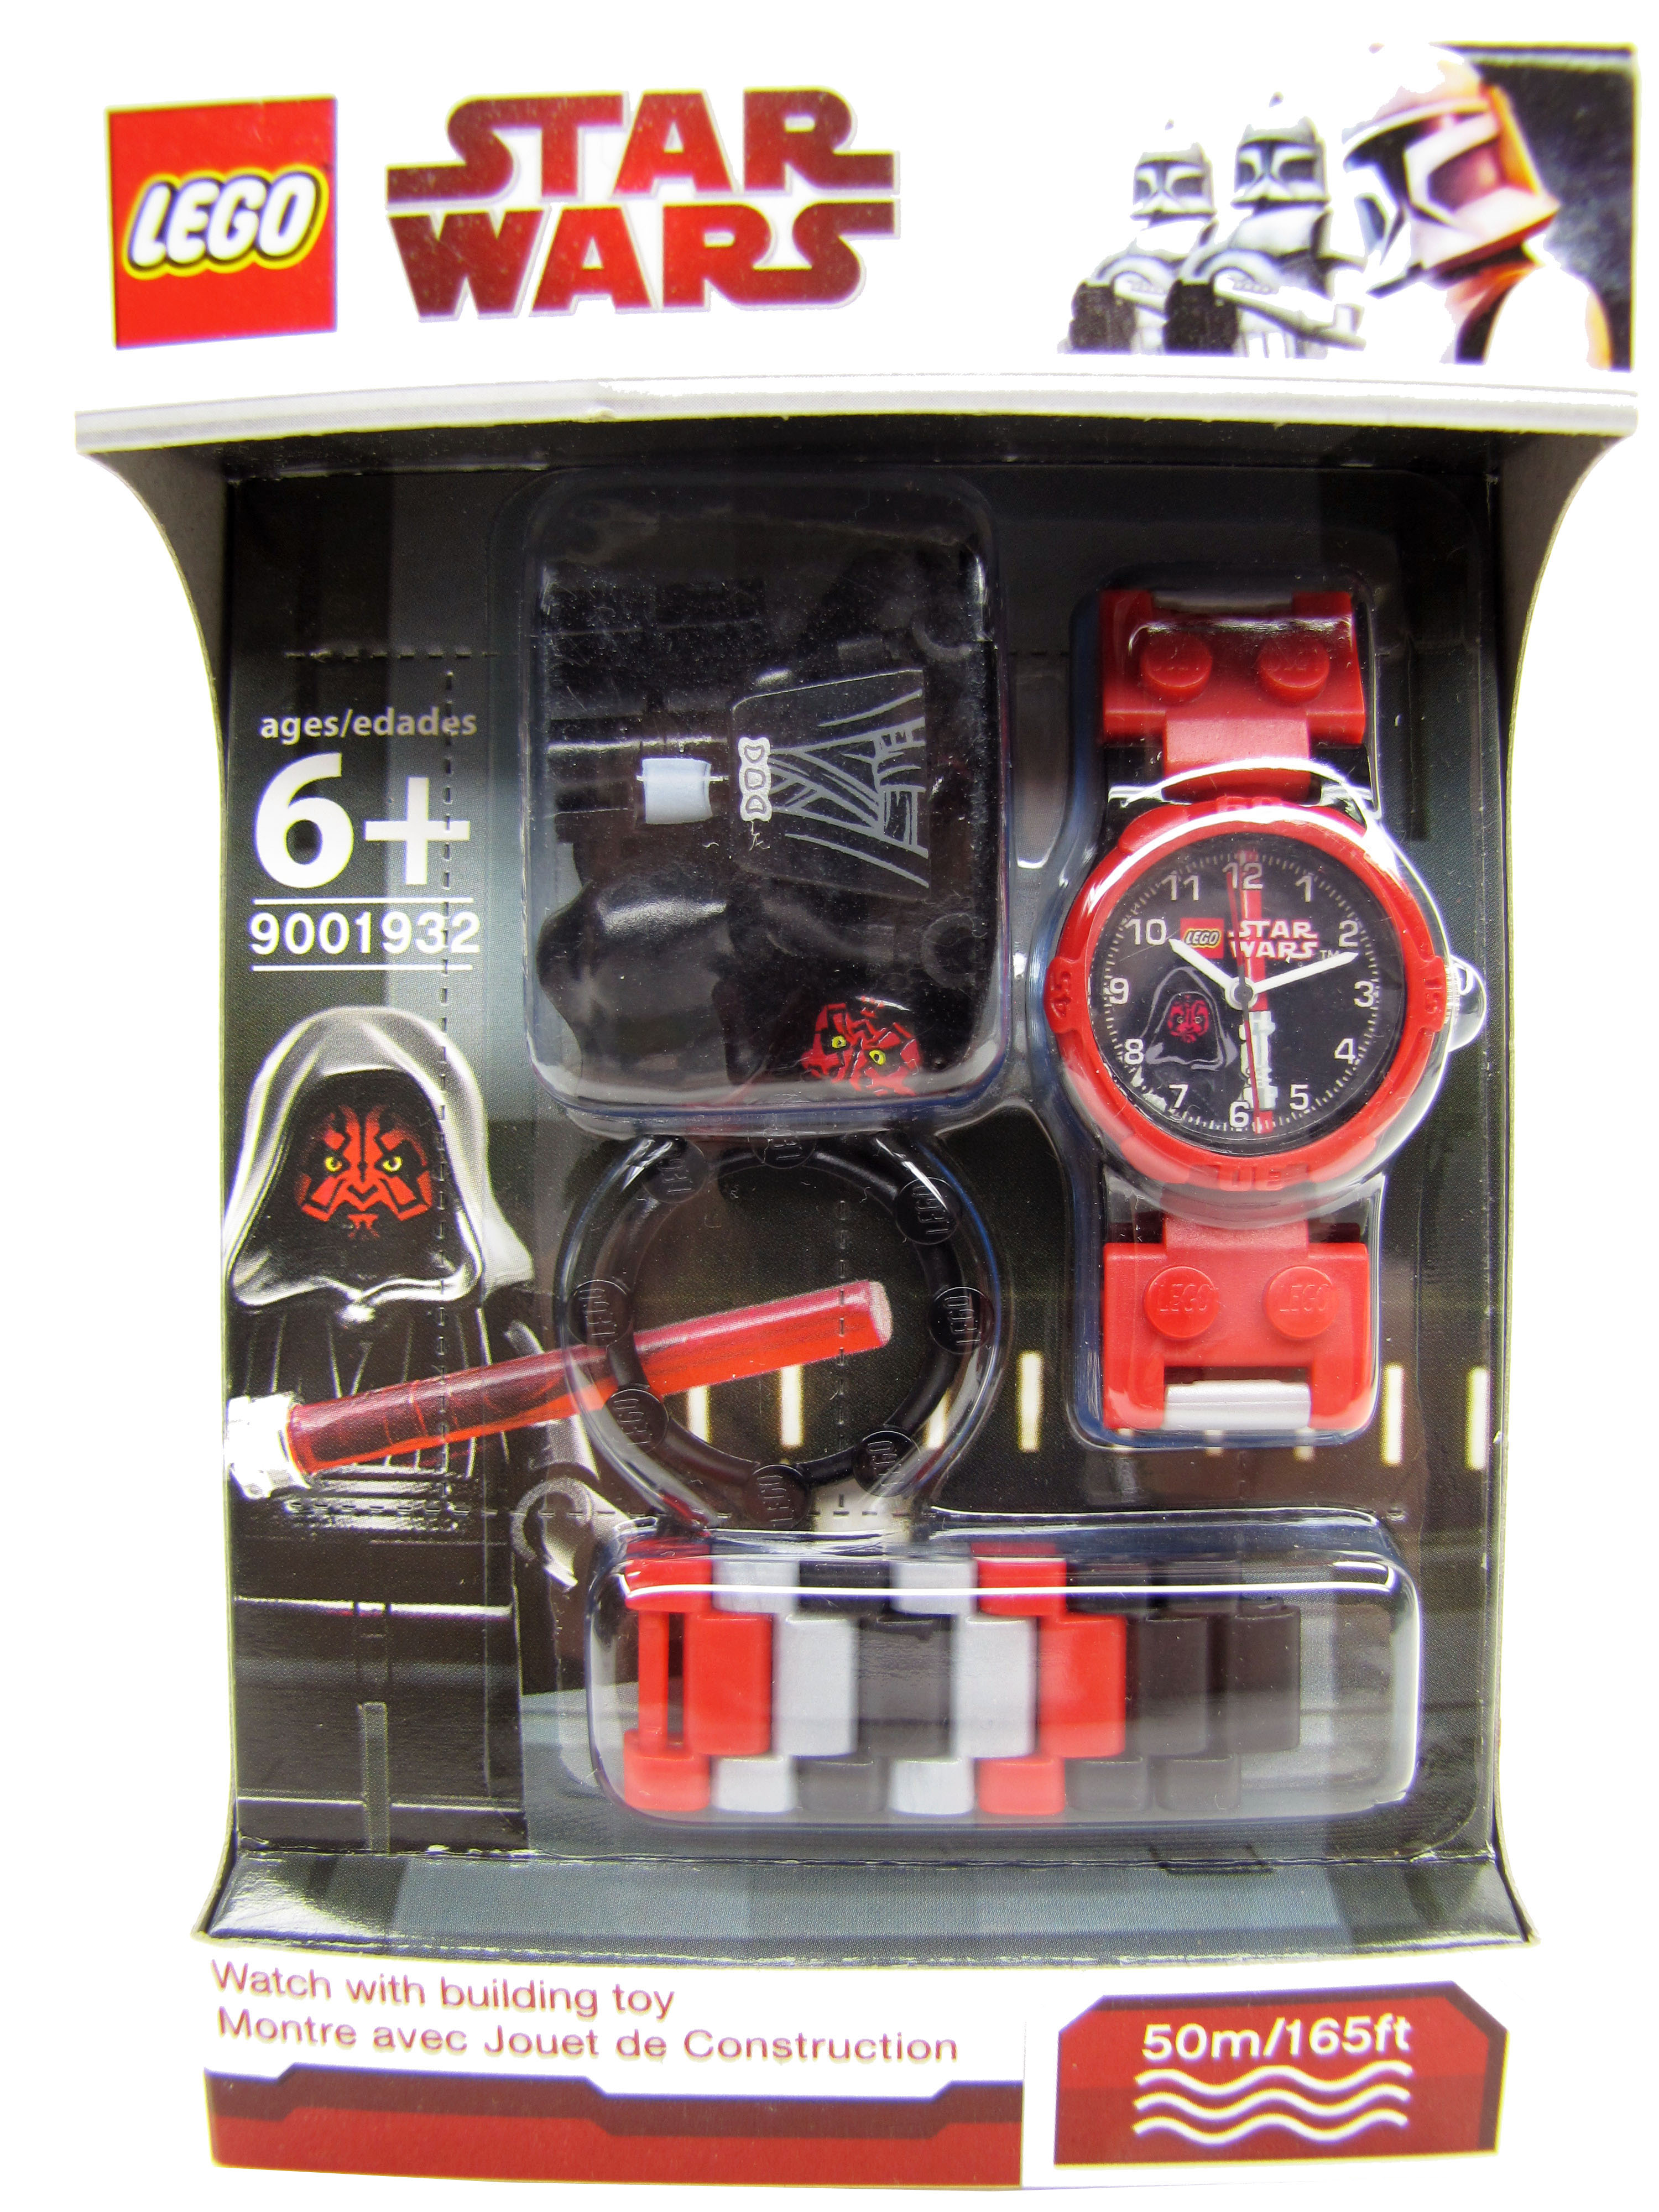 2010 Lego Star Wars Darth Maul Minifigure Watch NEW Lego Time 900193